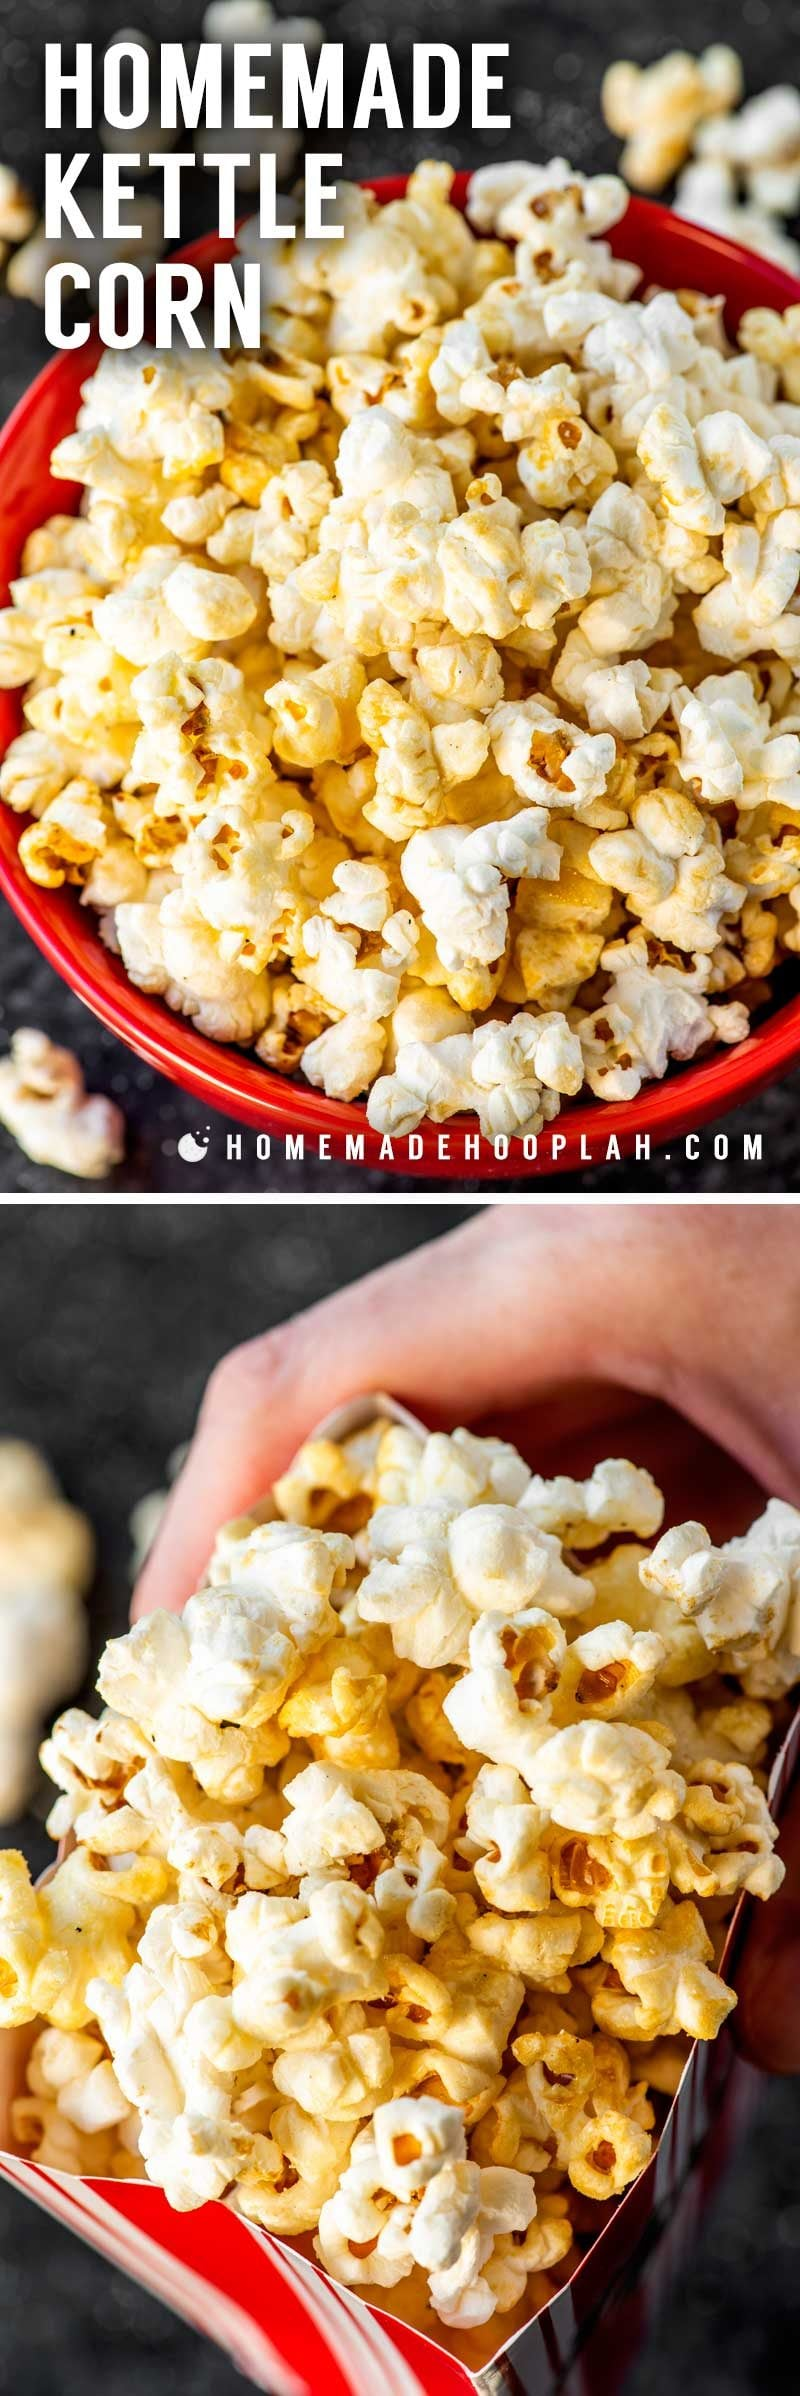 Kettle popcorn made on the stovetop.